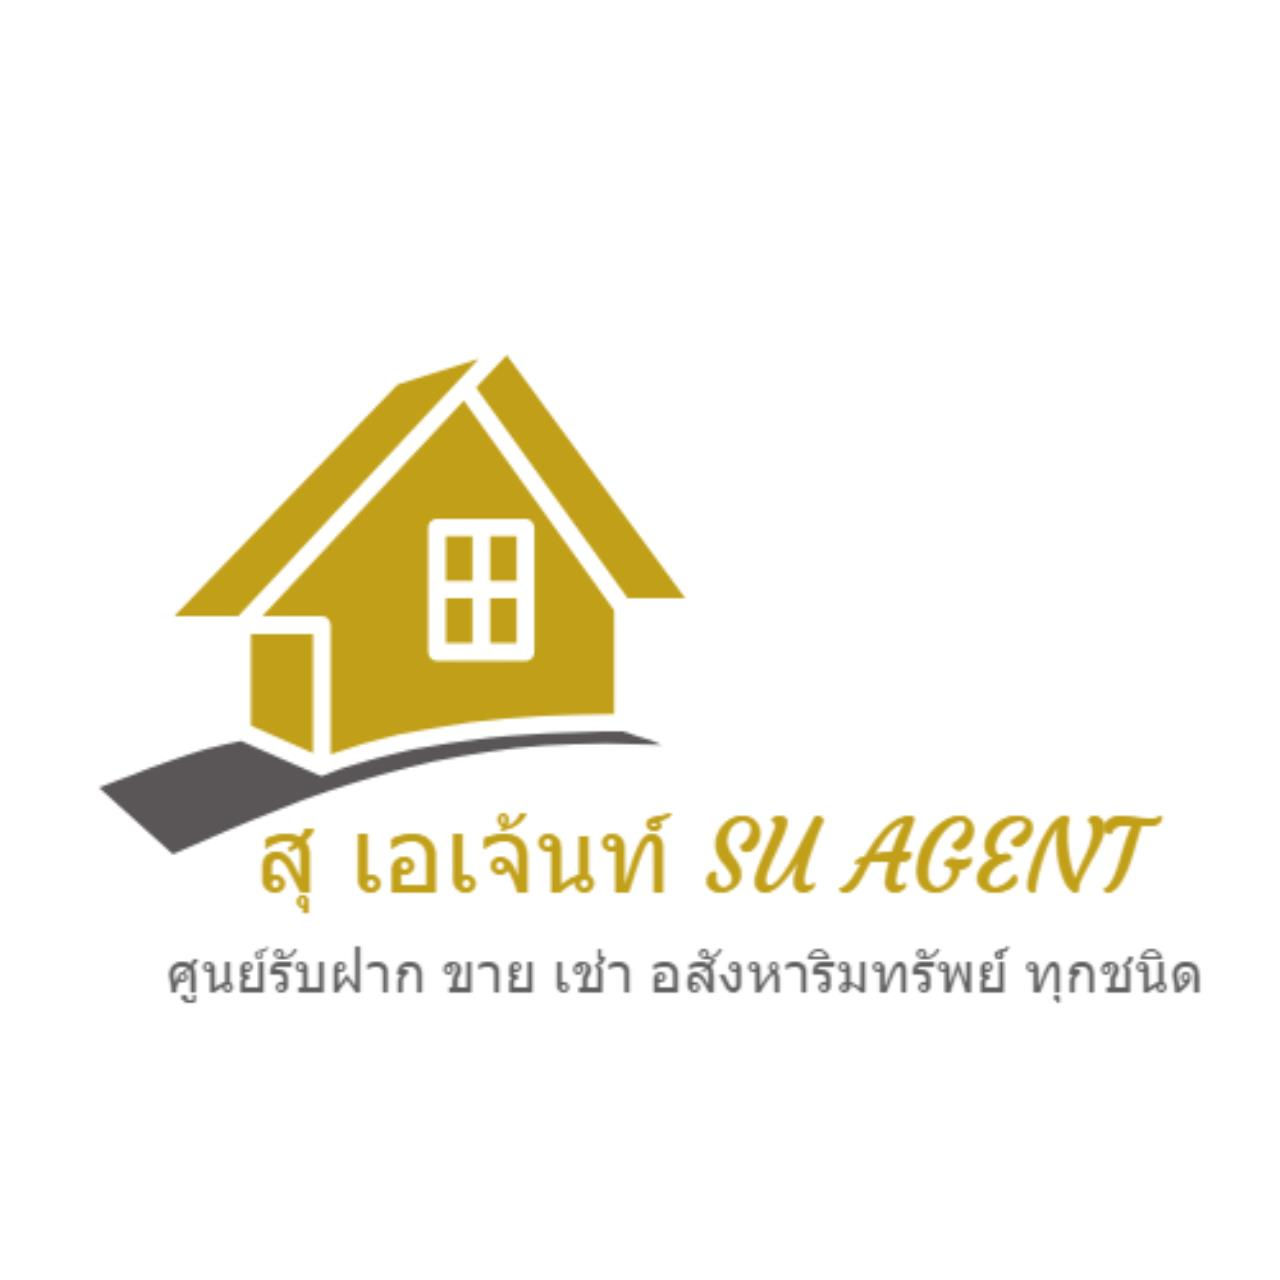 First Choice Properties by Su Agent logo